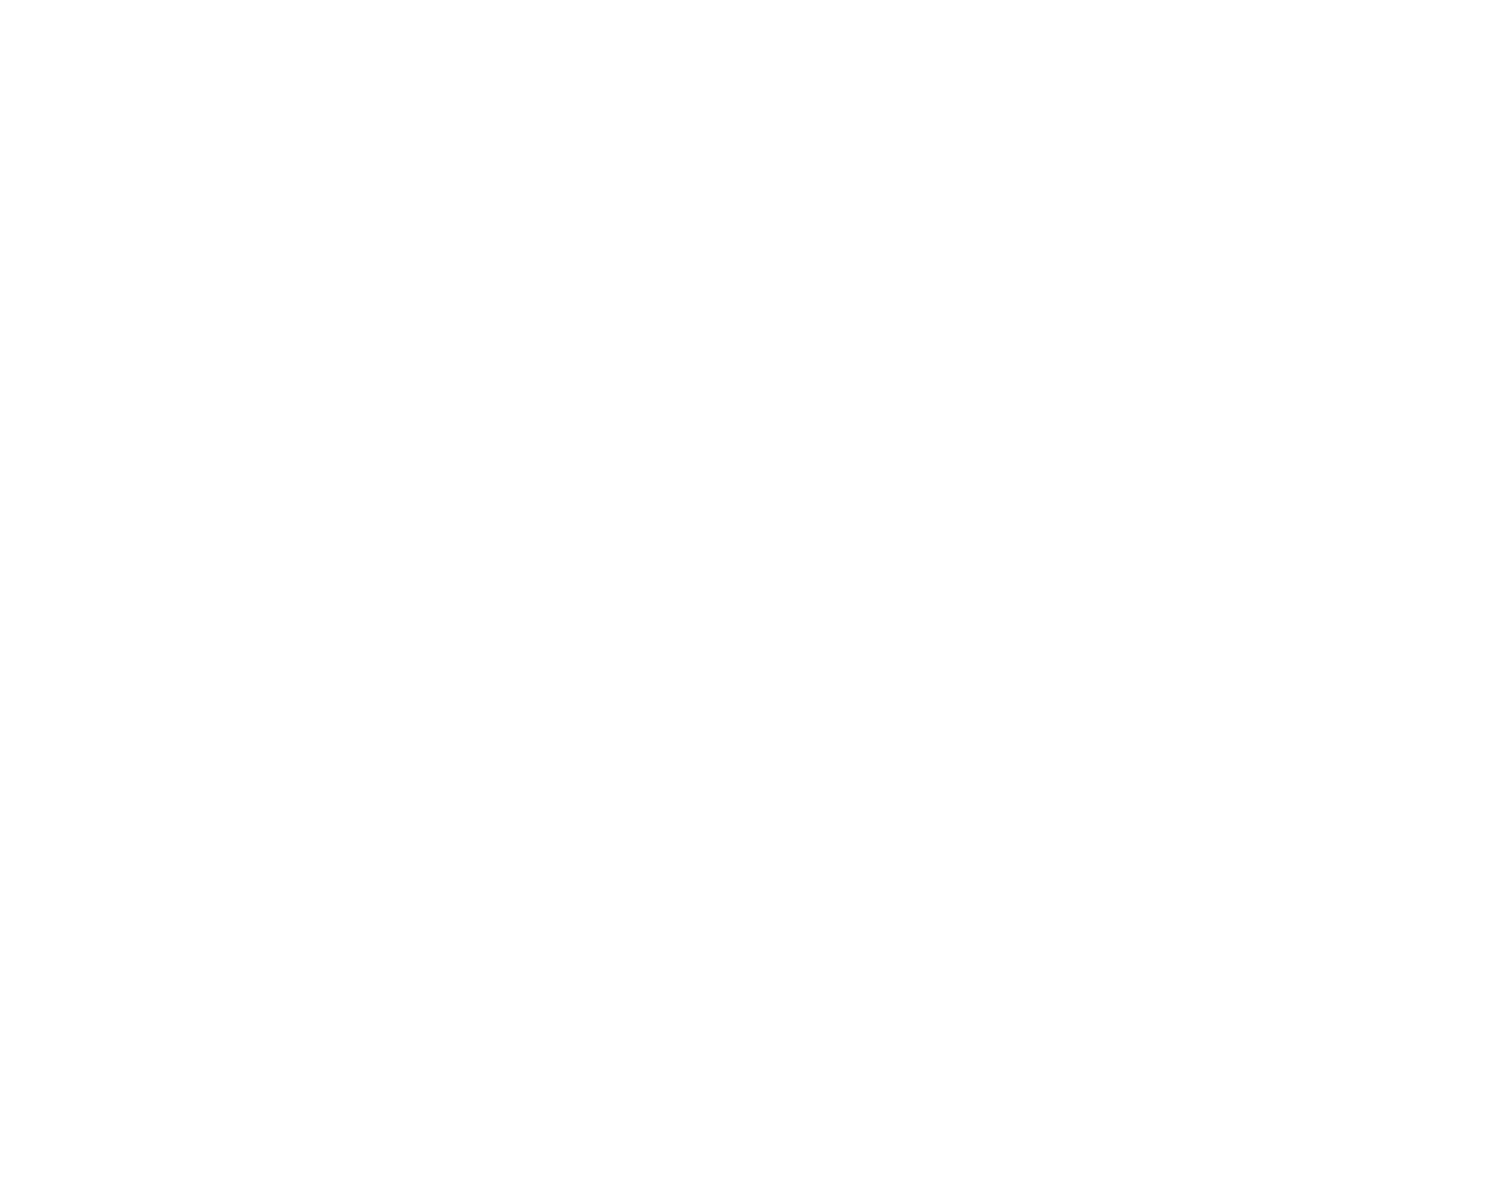 The Cross+ng